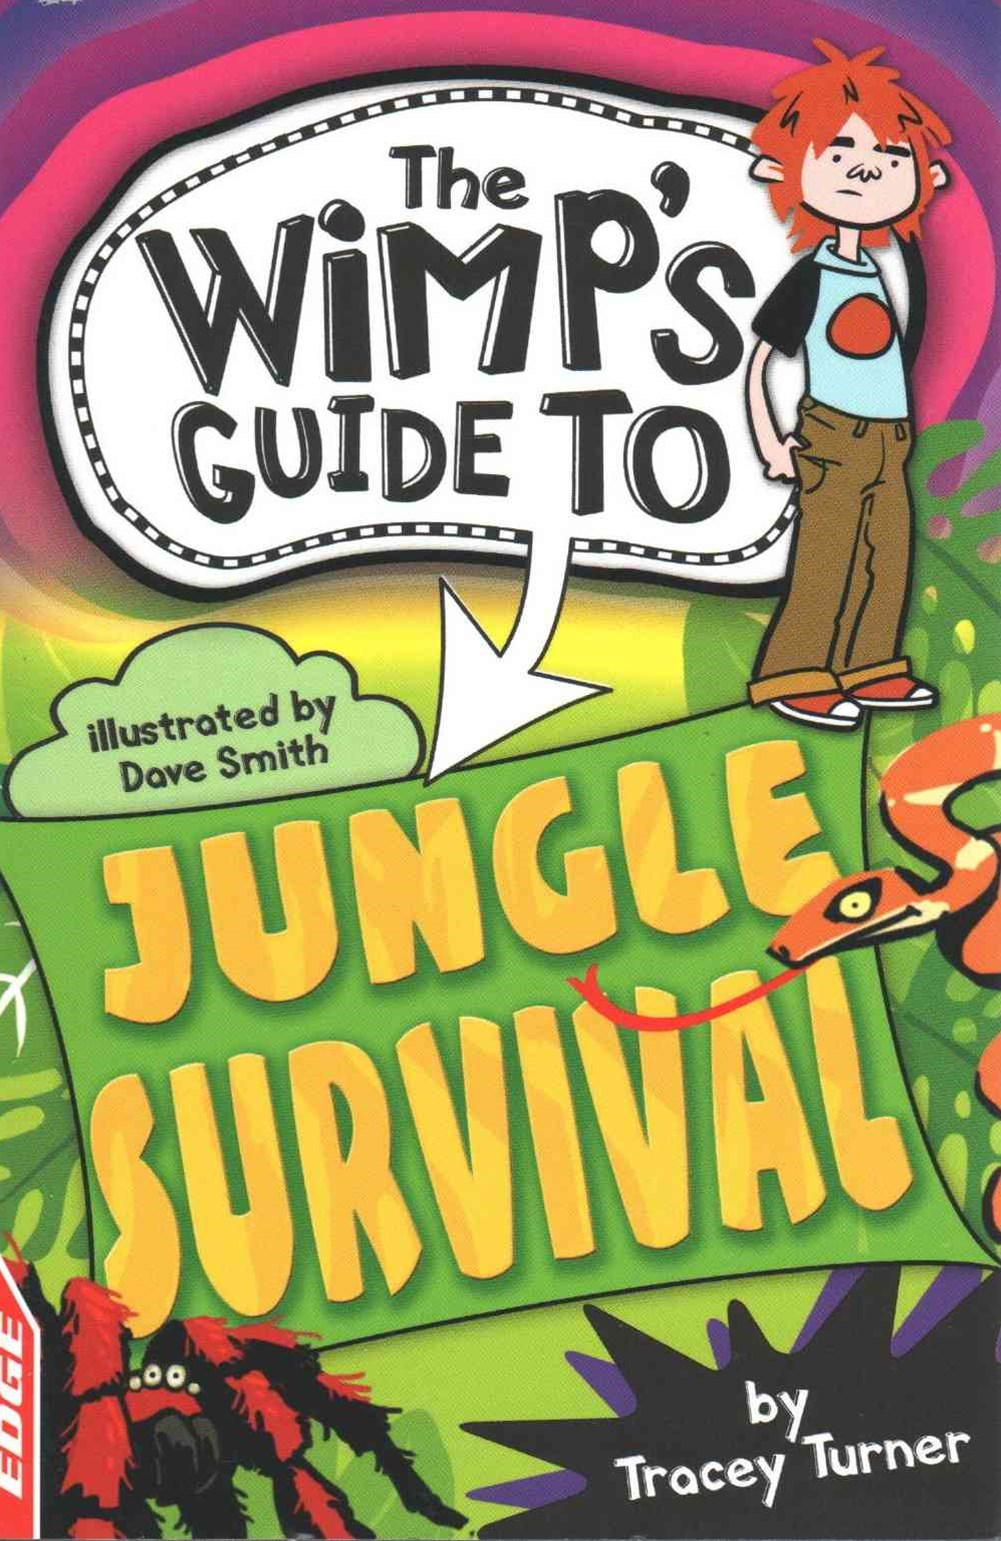 EDGE: The Wimp's Guide to: Jungle Survival